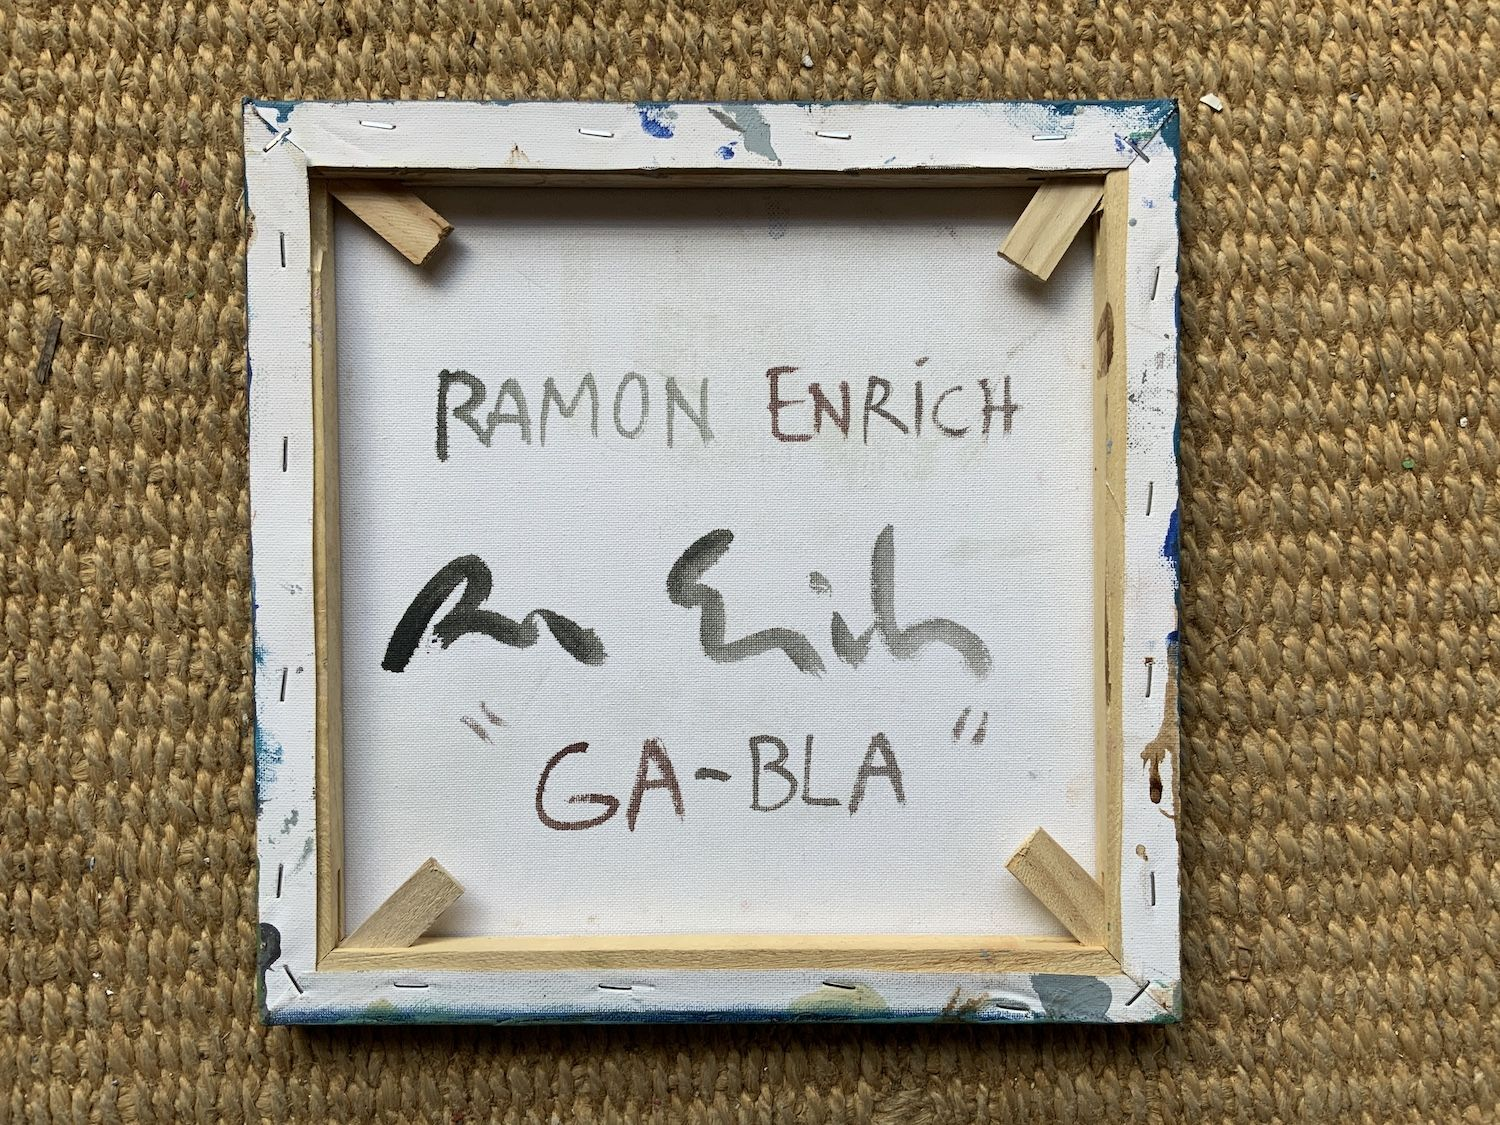 GA-BLA,Ramon Enrich,Contemporary painting, detail 4